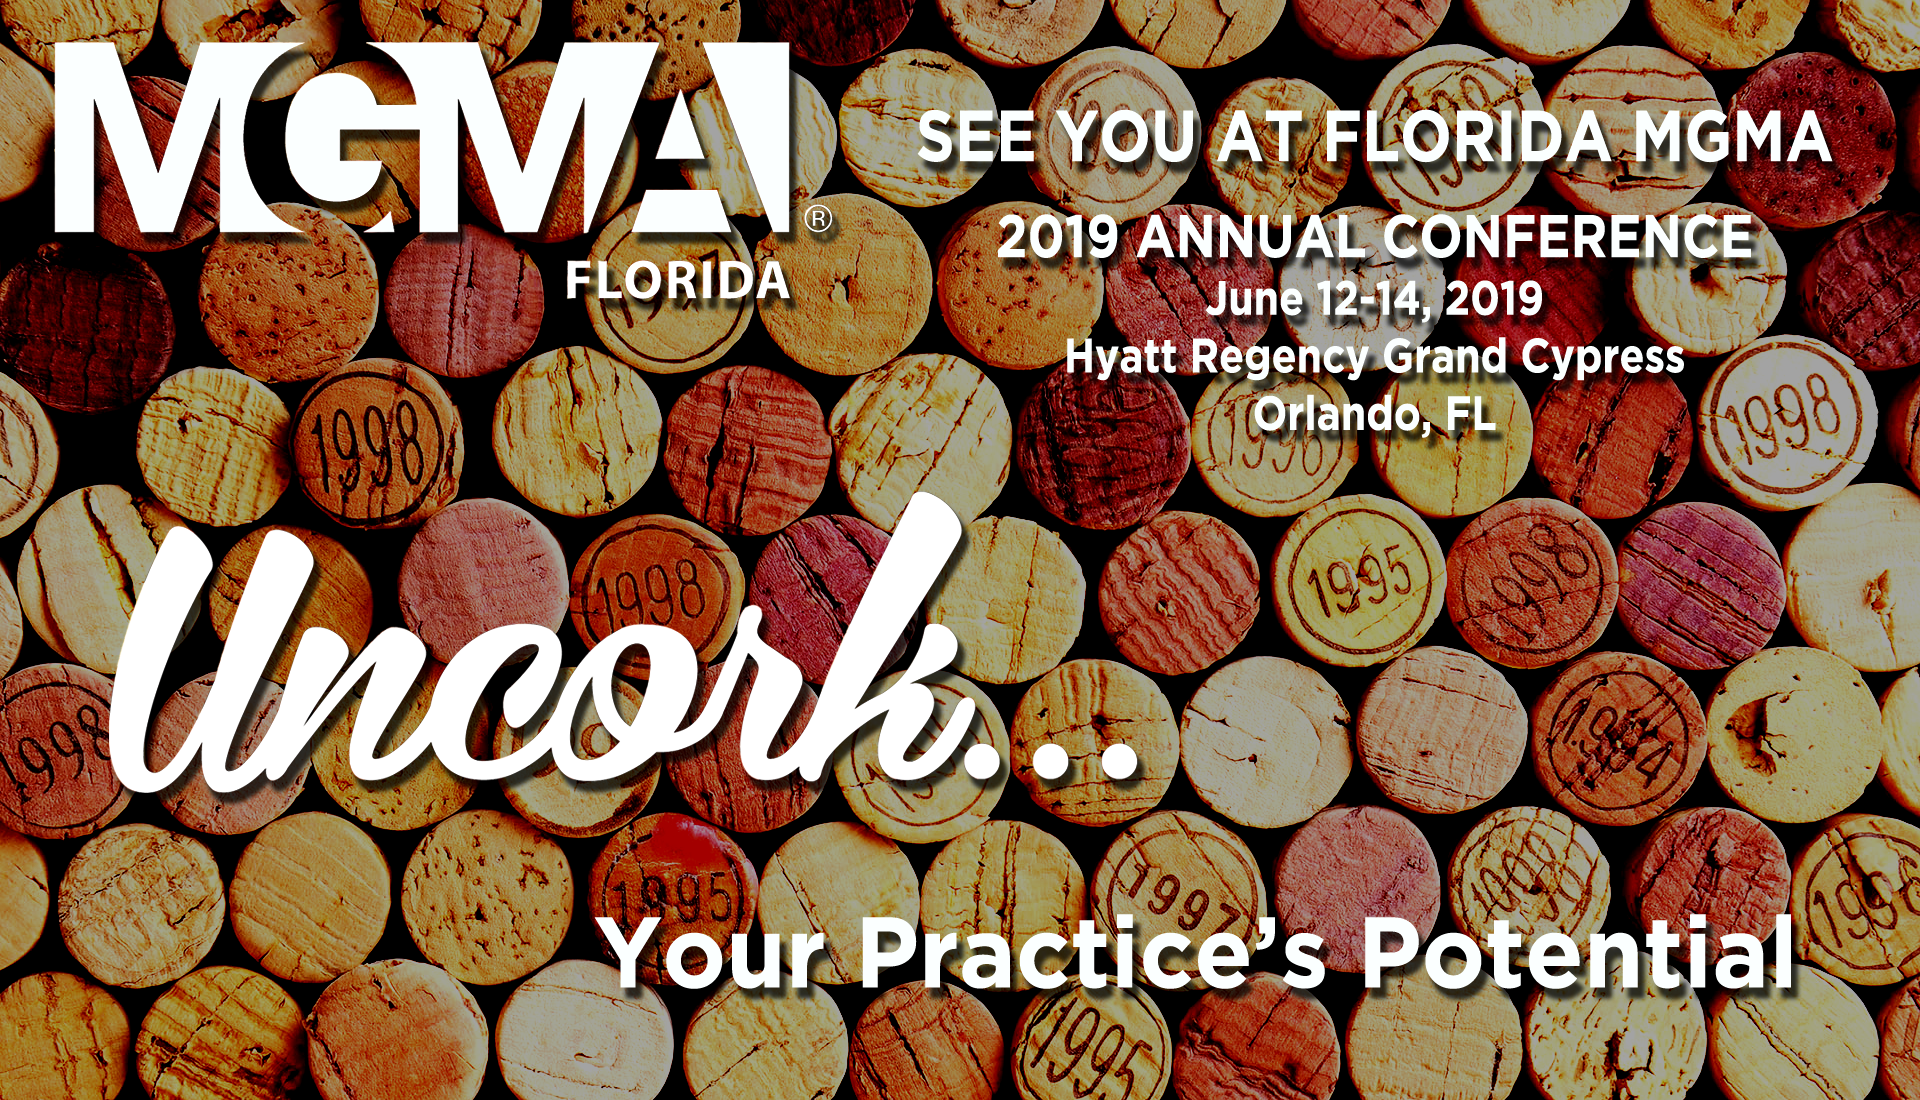 MGMA Florida Annual Conference